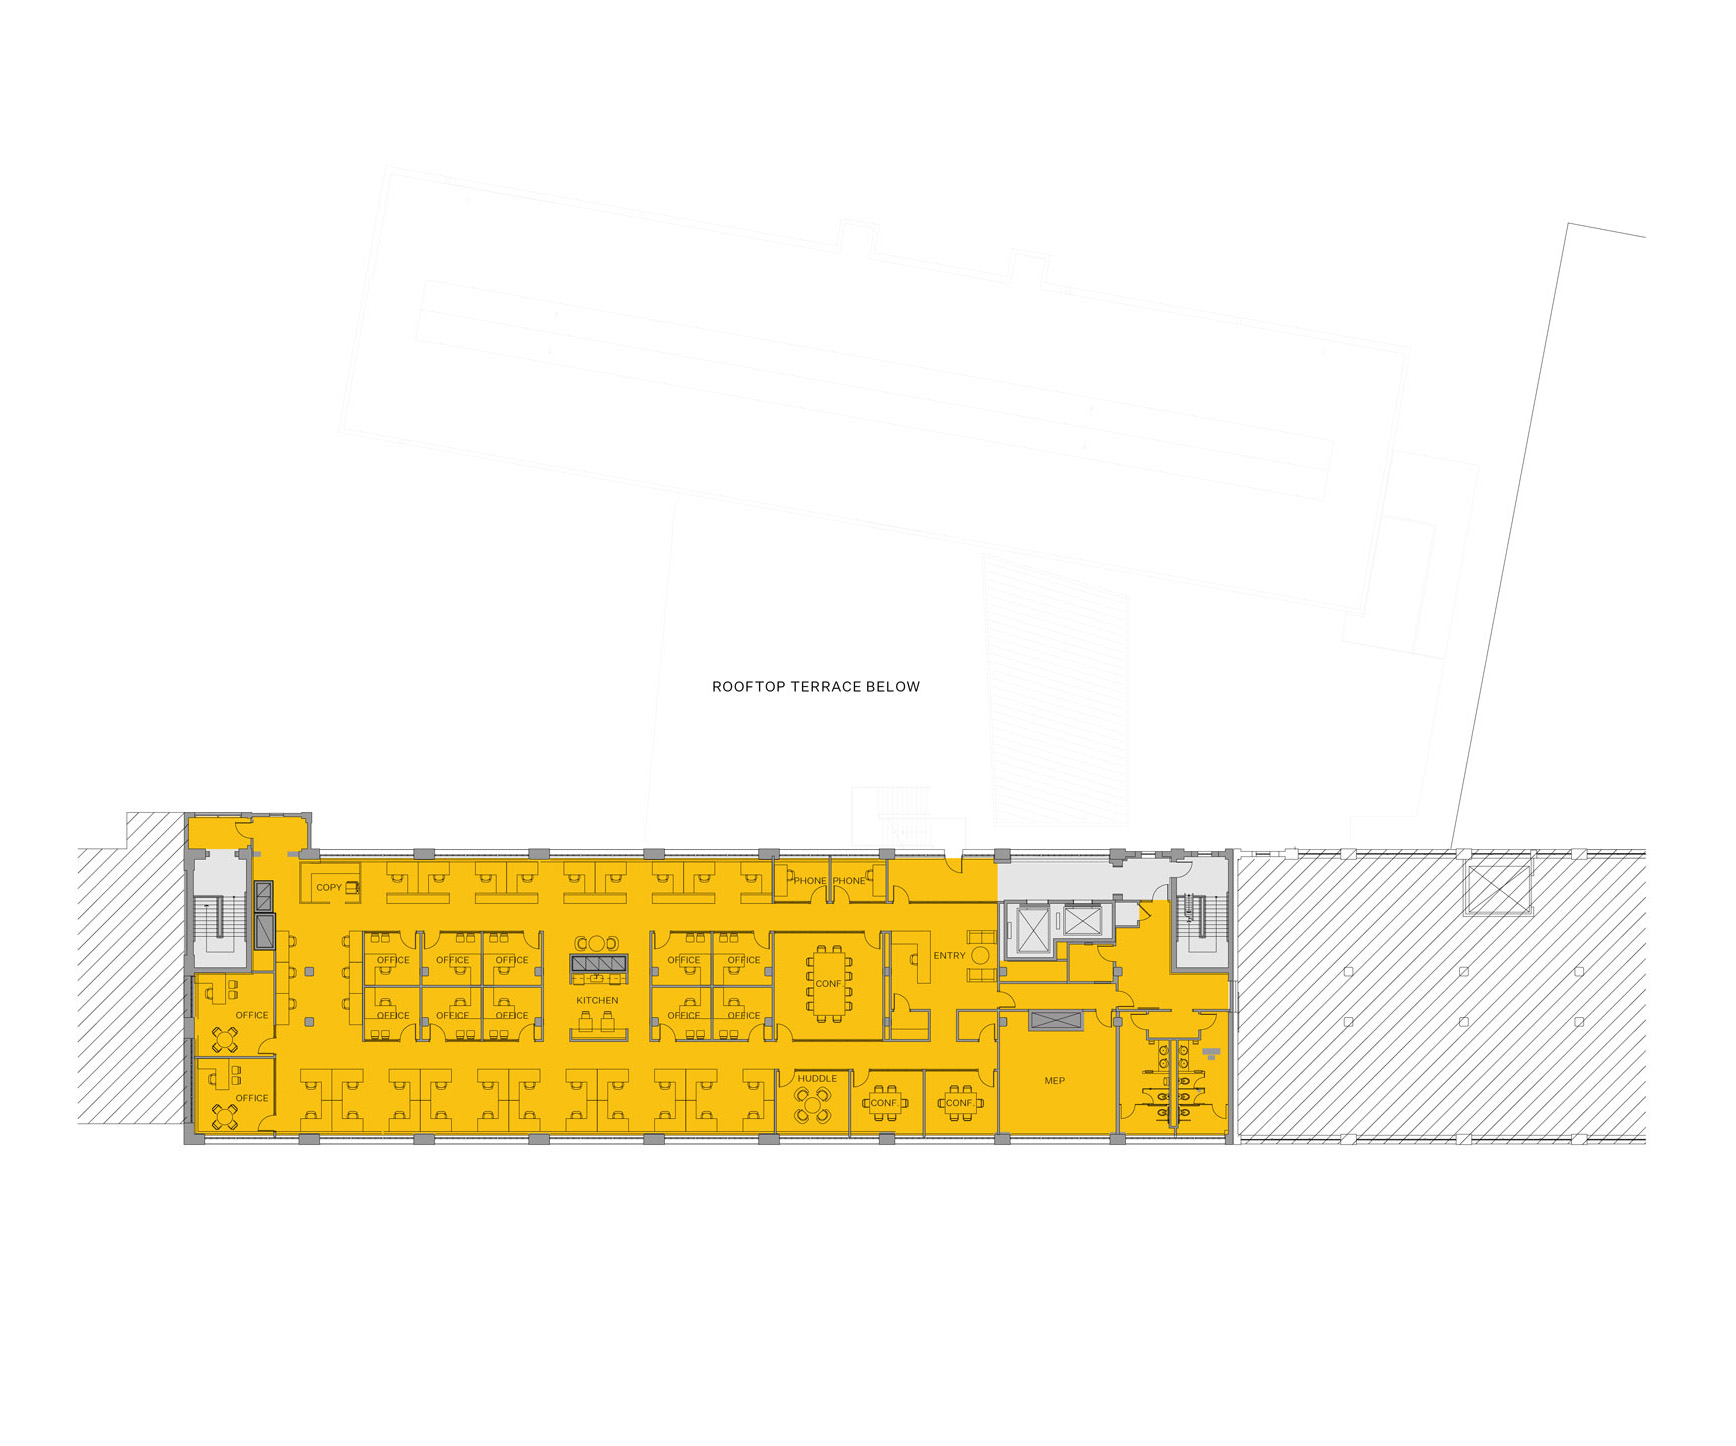 Blueprint layout of Winchester campus level 6